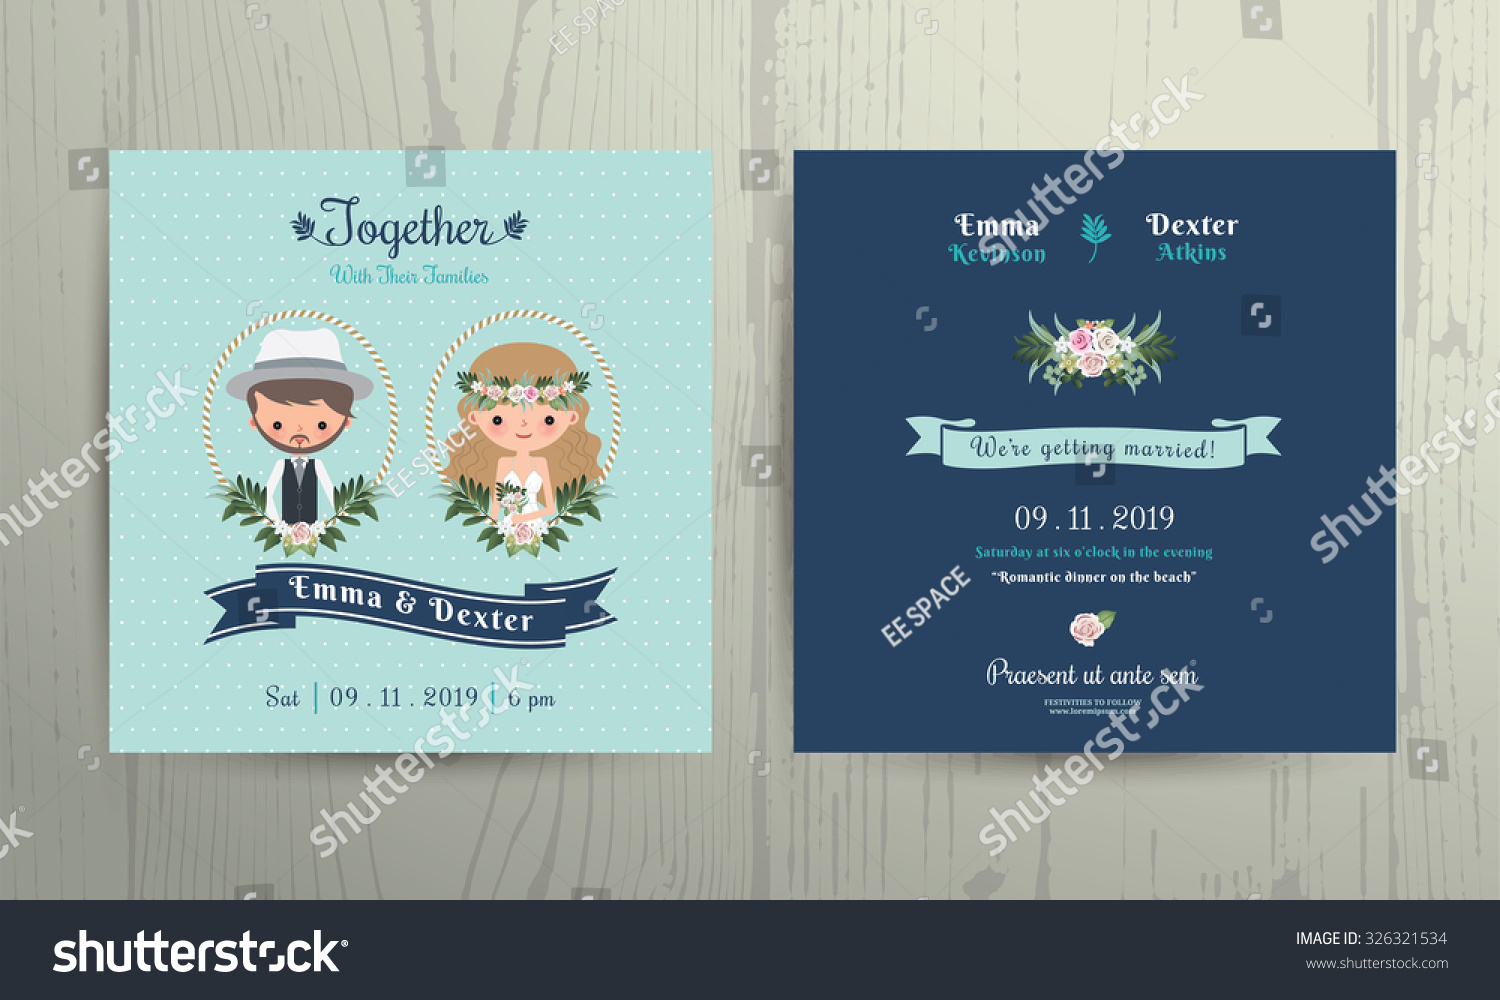 wedding invitations and groom theme - 28 images - the best wedding ...